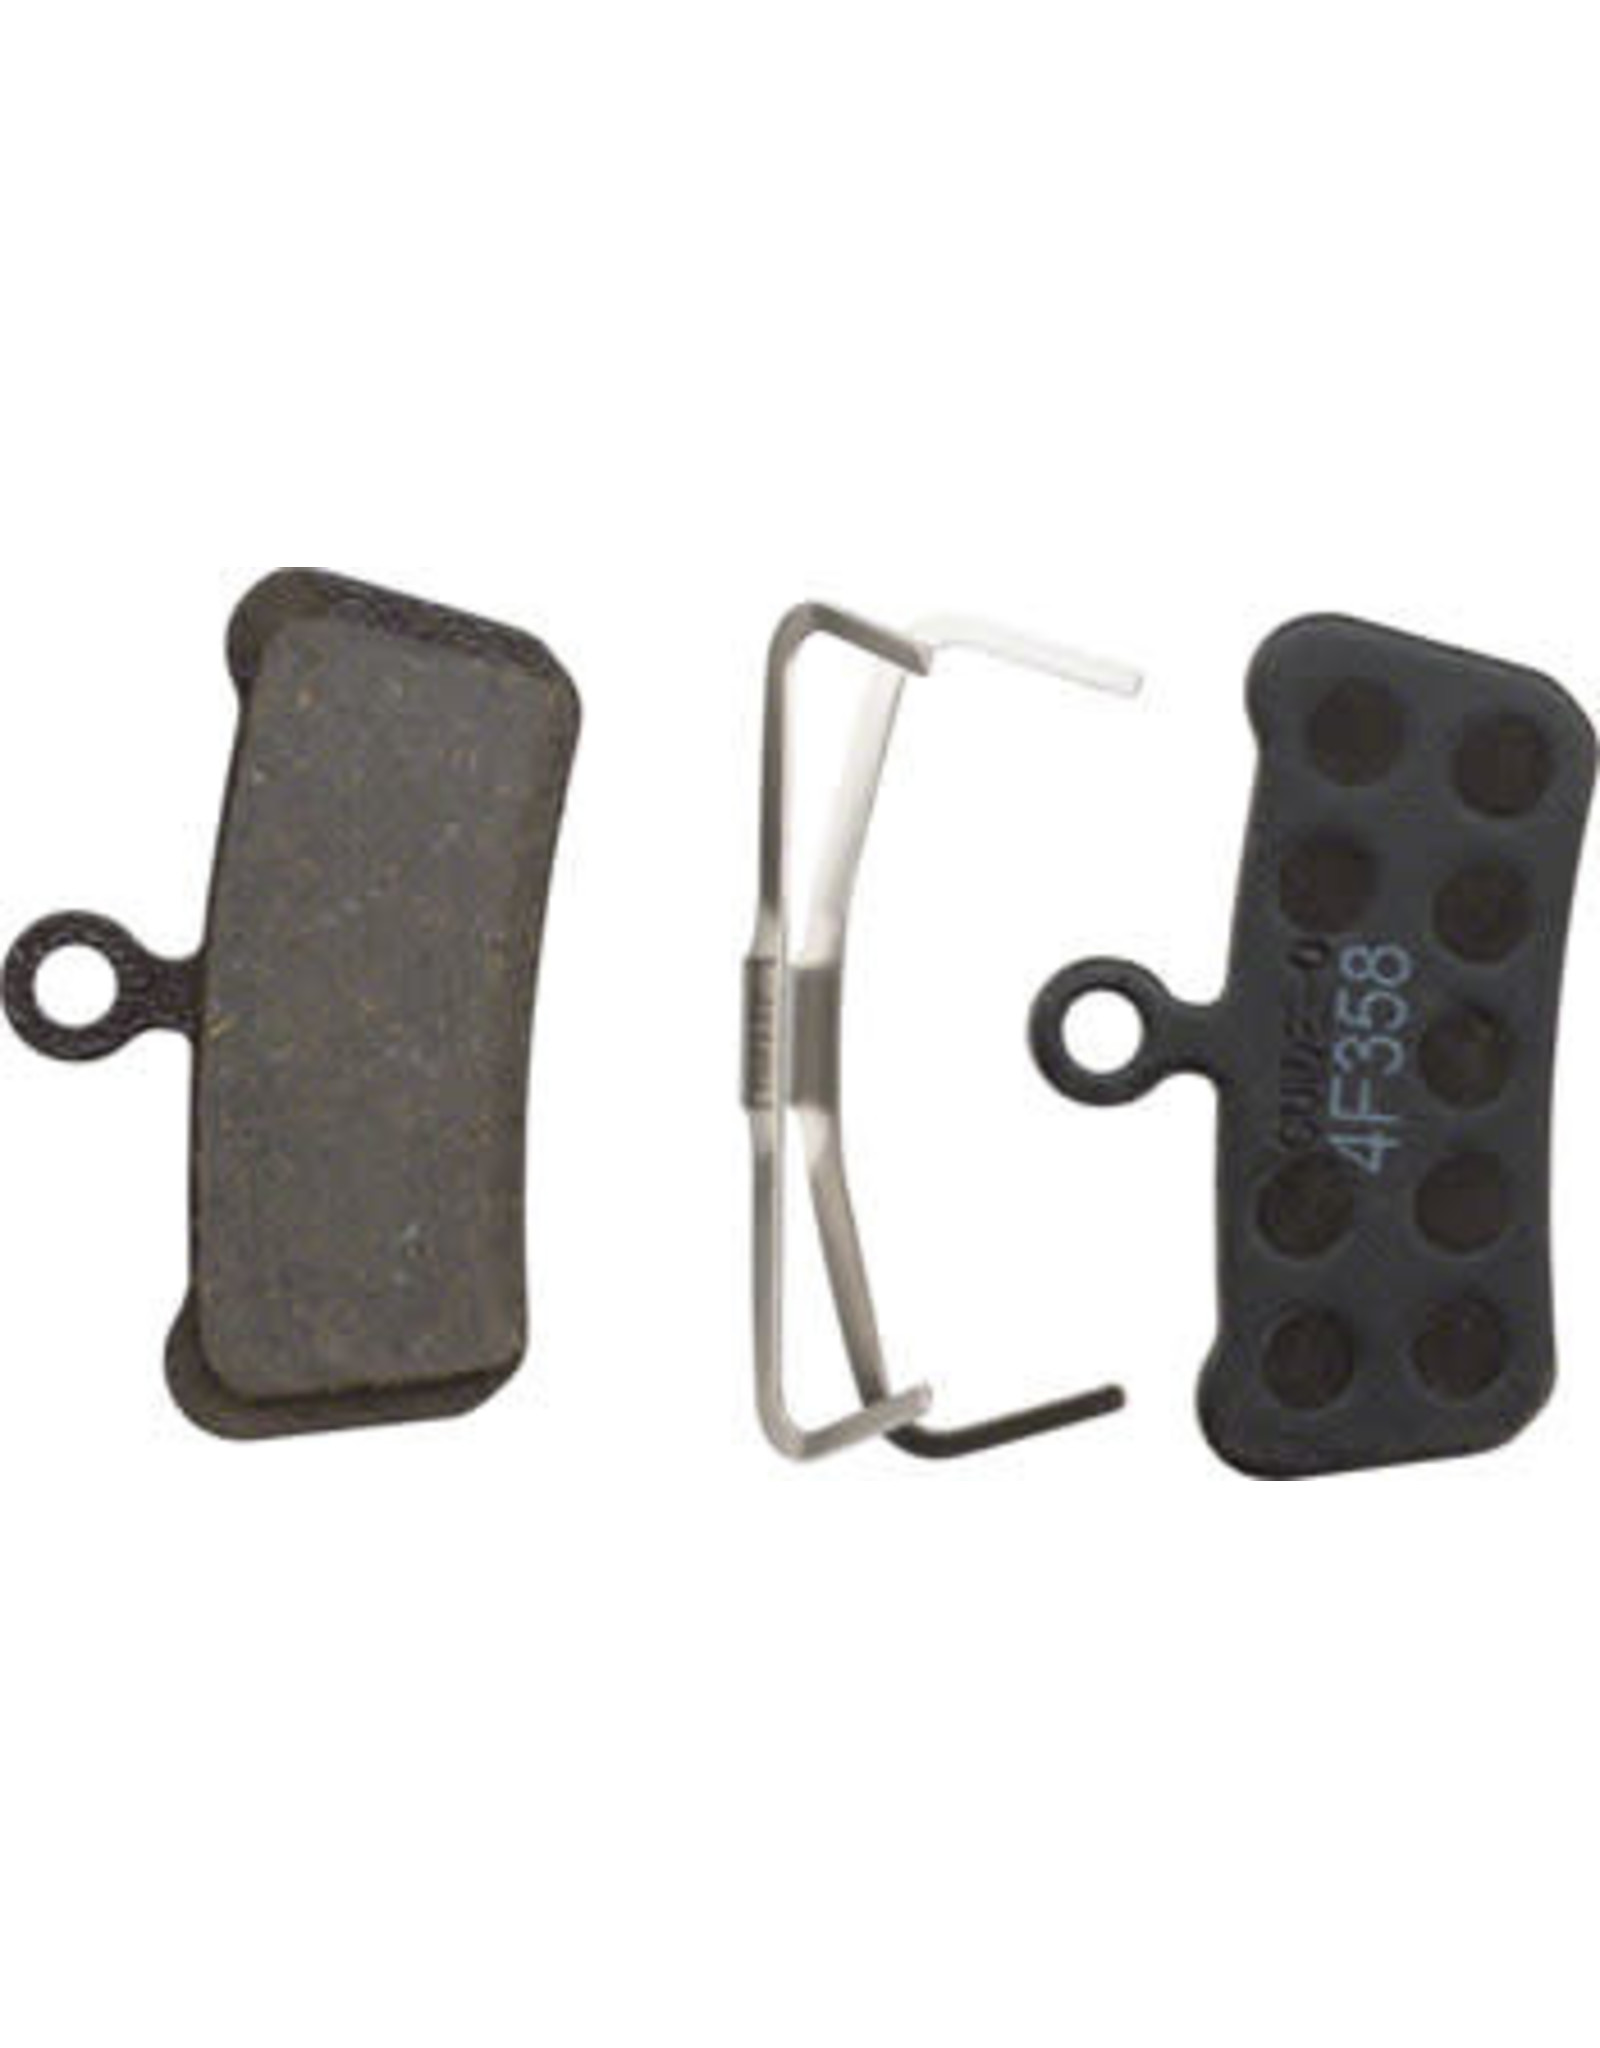 SRAM SRAM Guide and Avid Trail Disc Brake Pads Steel Backed Organic Compound